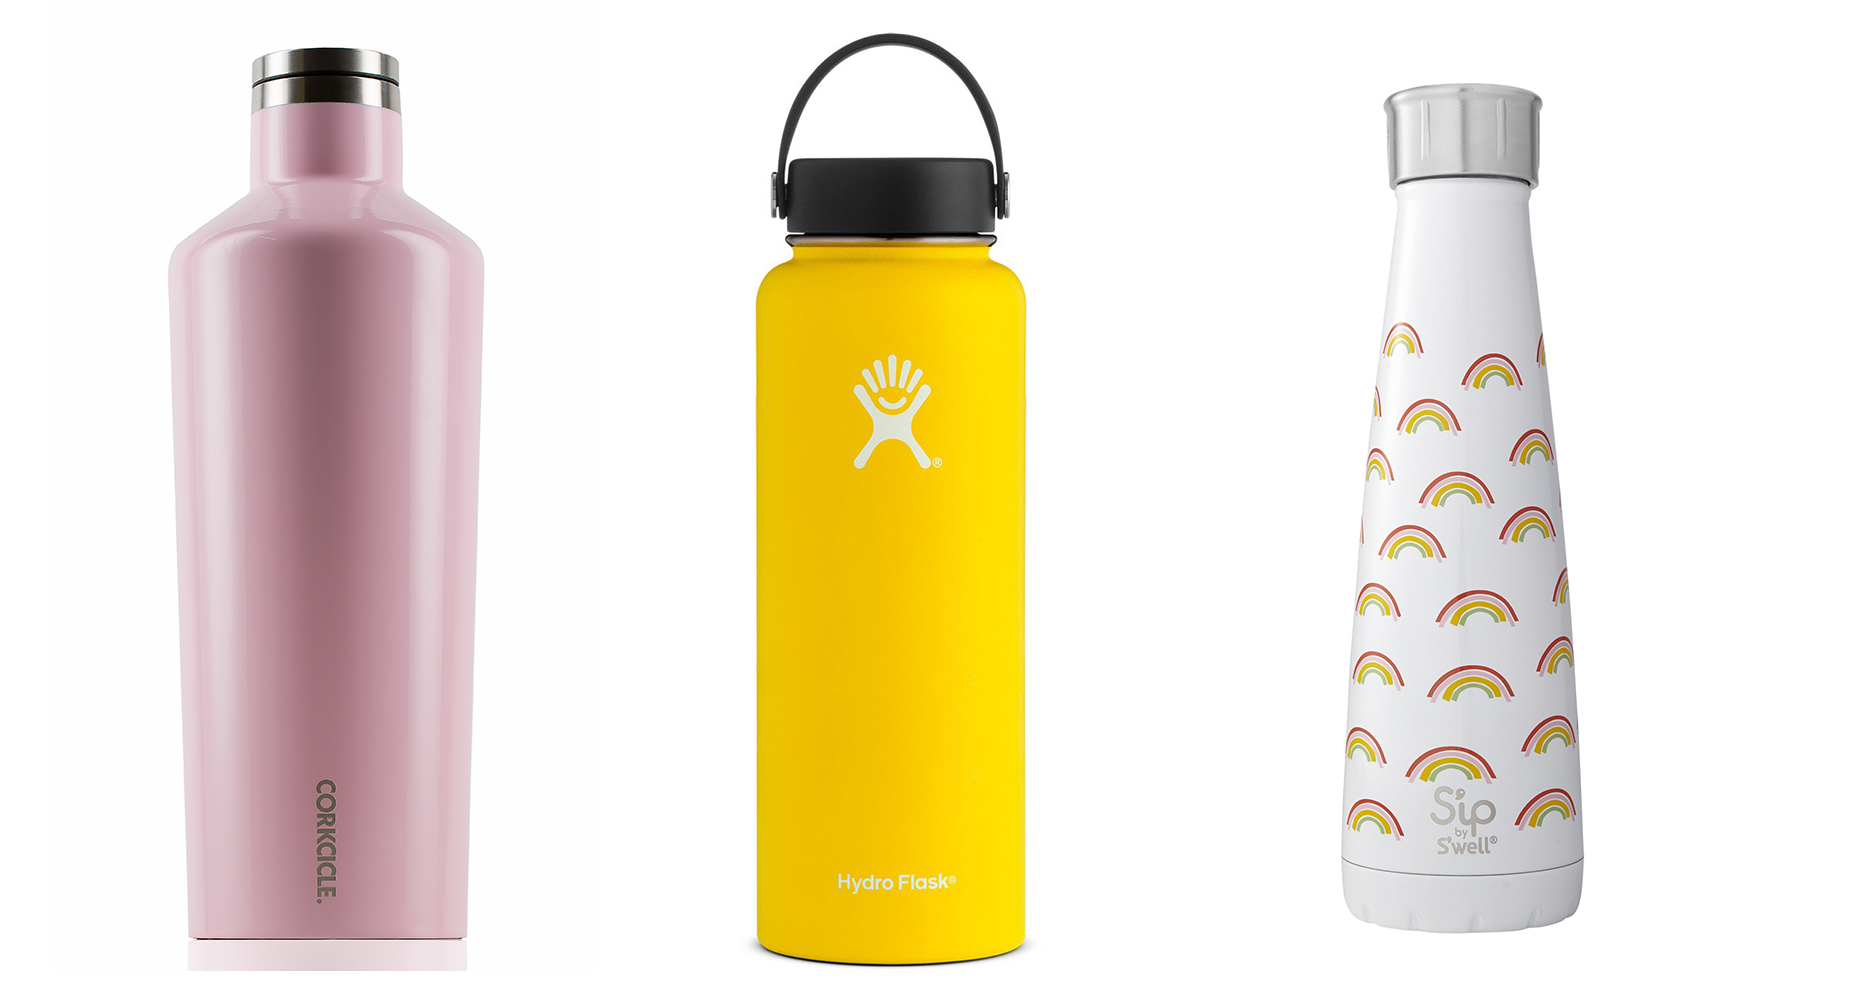 Insulated bottles to keep drinks hot or cold